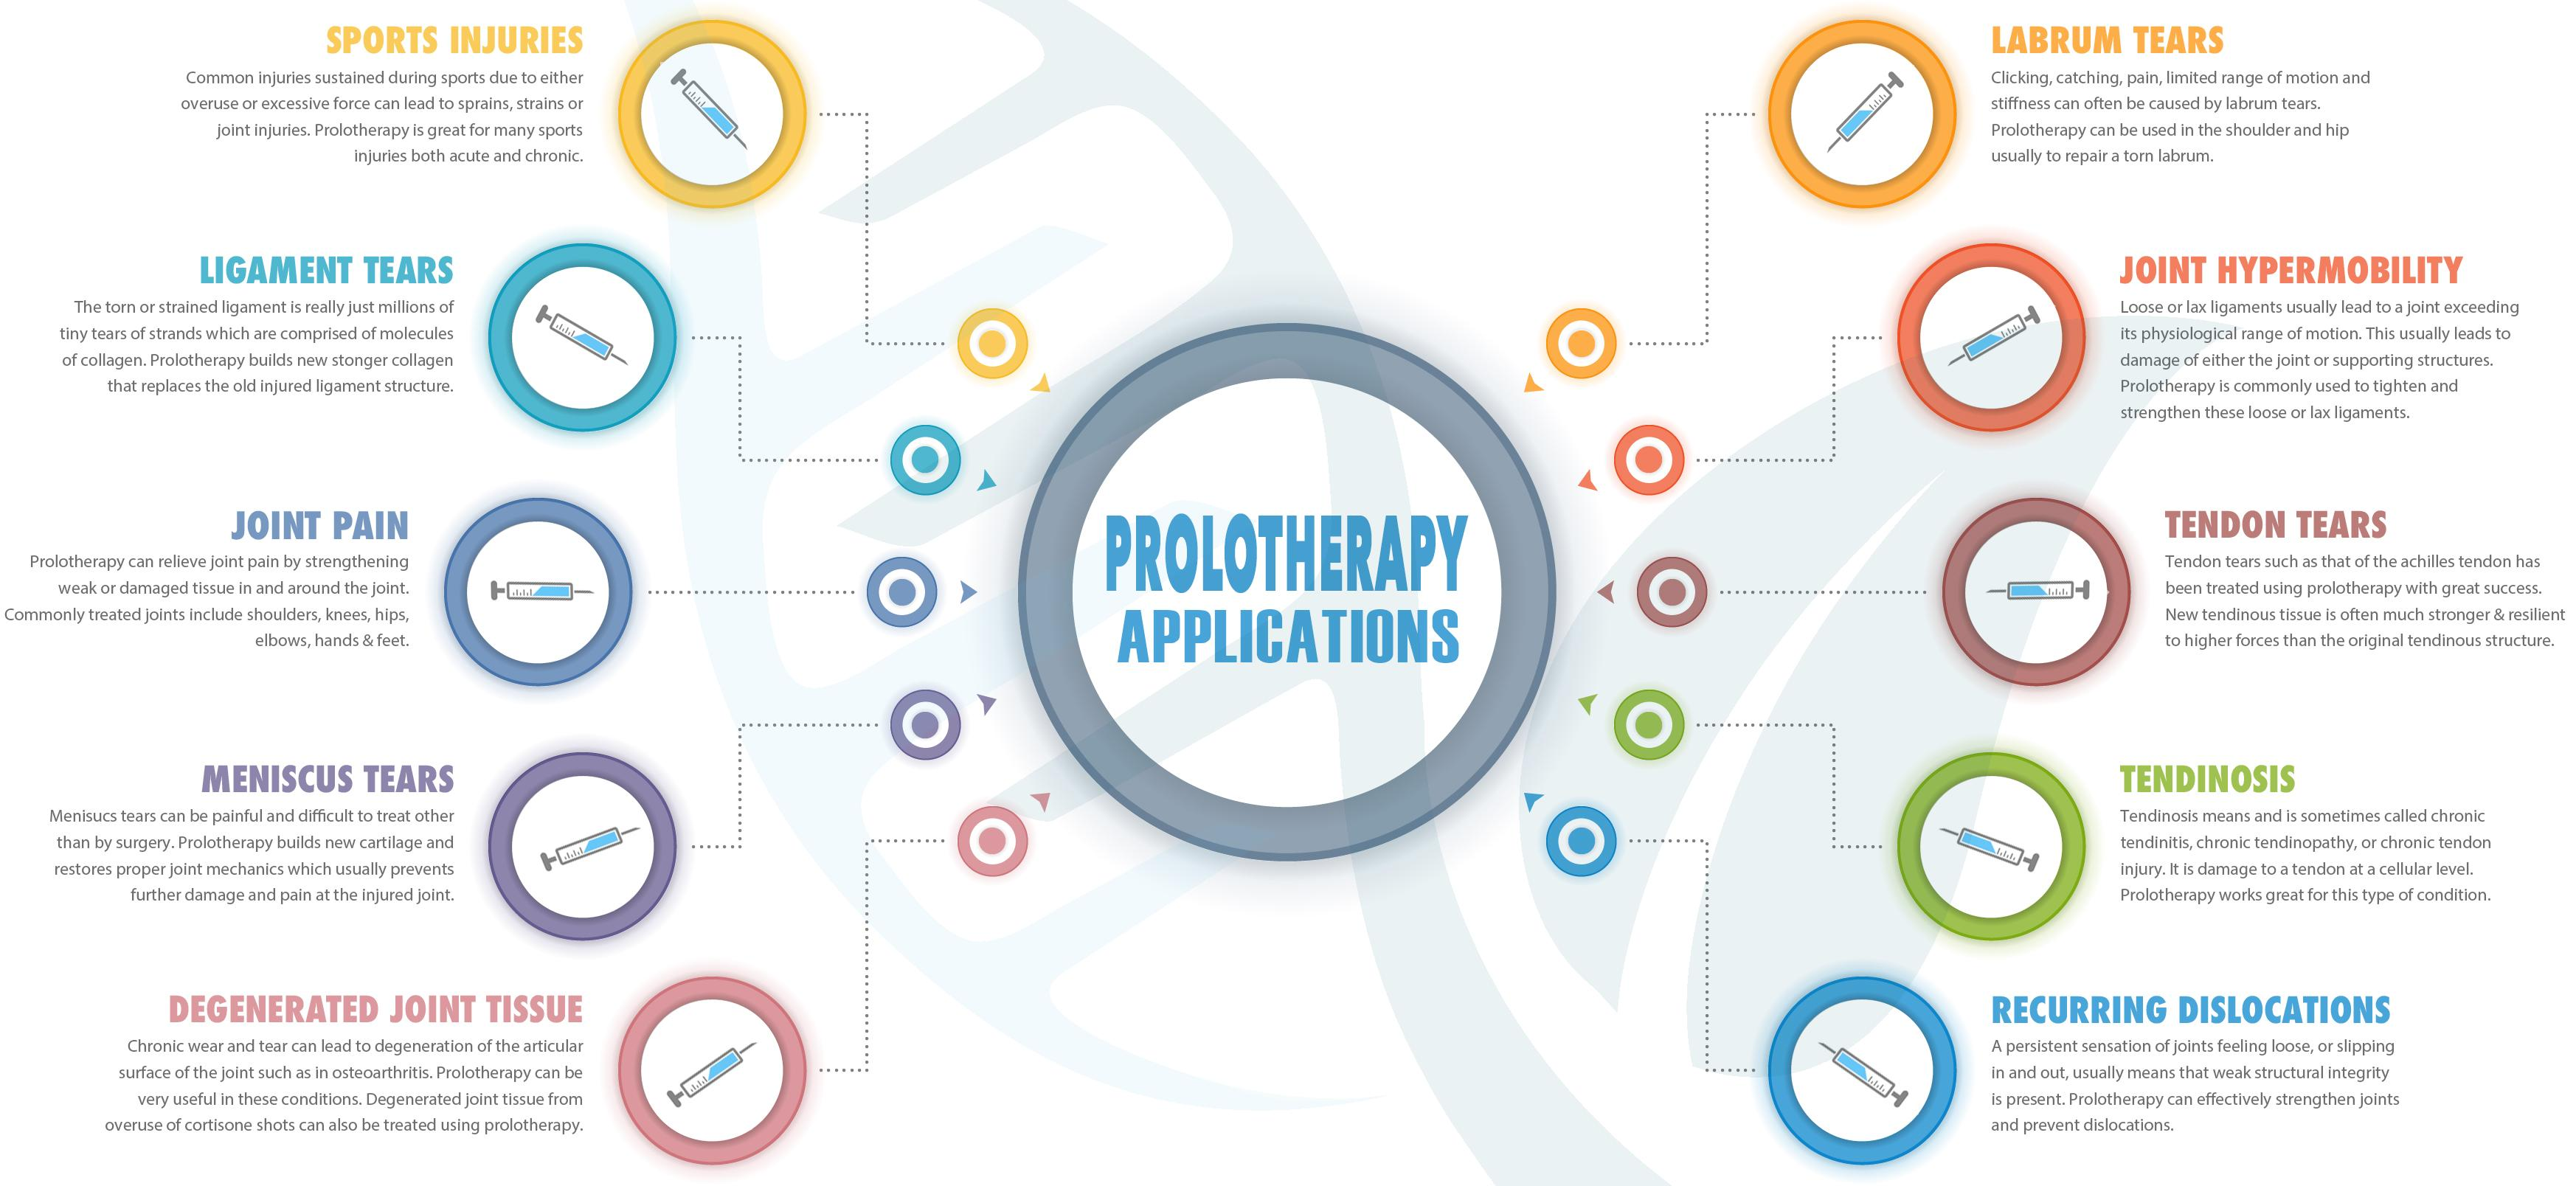 Non-spinal Indications for Prolotherapy